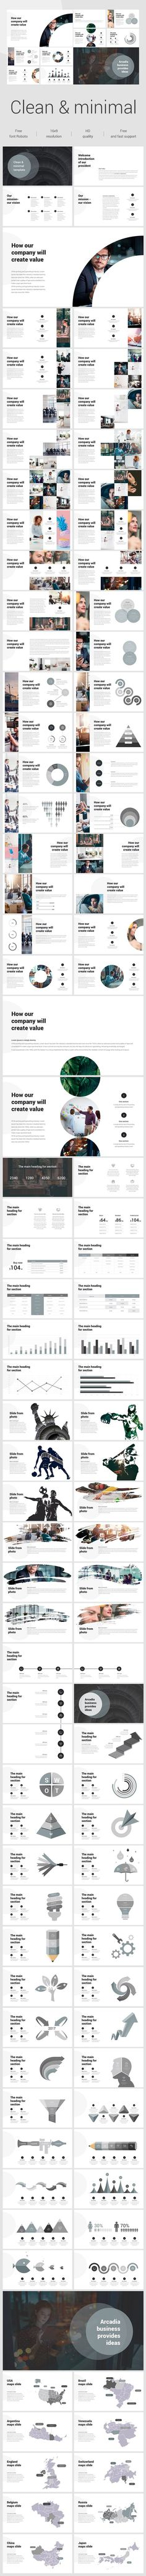 Clean & Minimal Powerpoint Template - Pitch Deck PowerPoint Templates